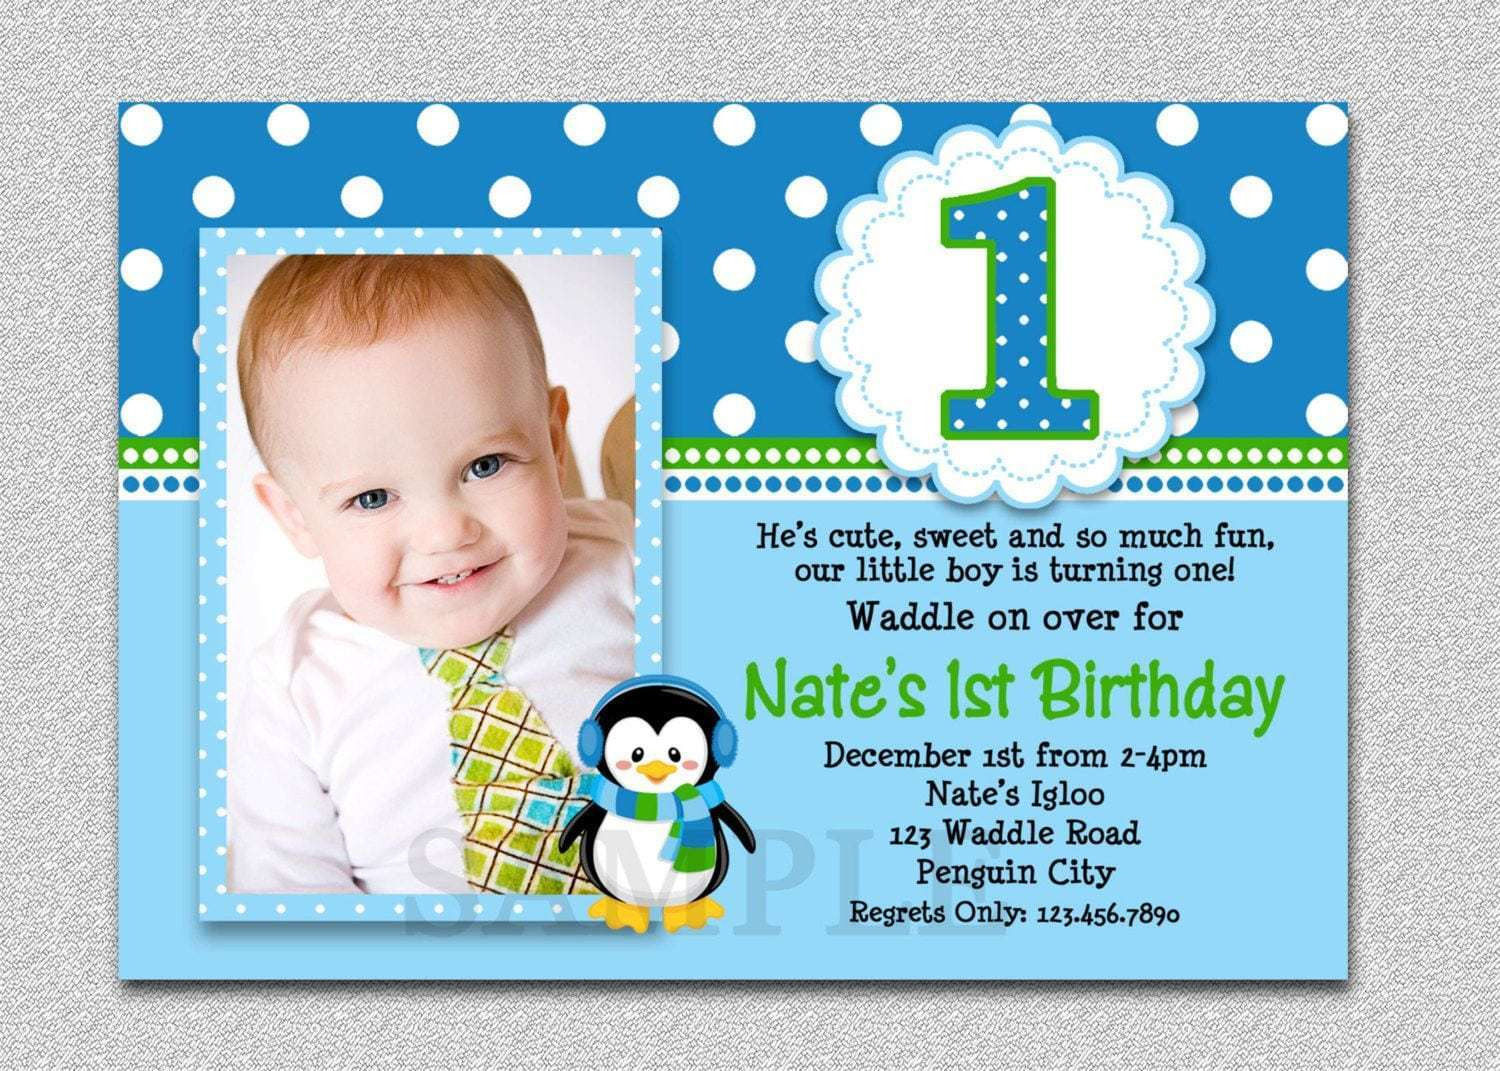 Sample Invitation Card For Christening And Birthday